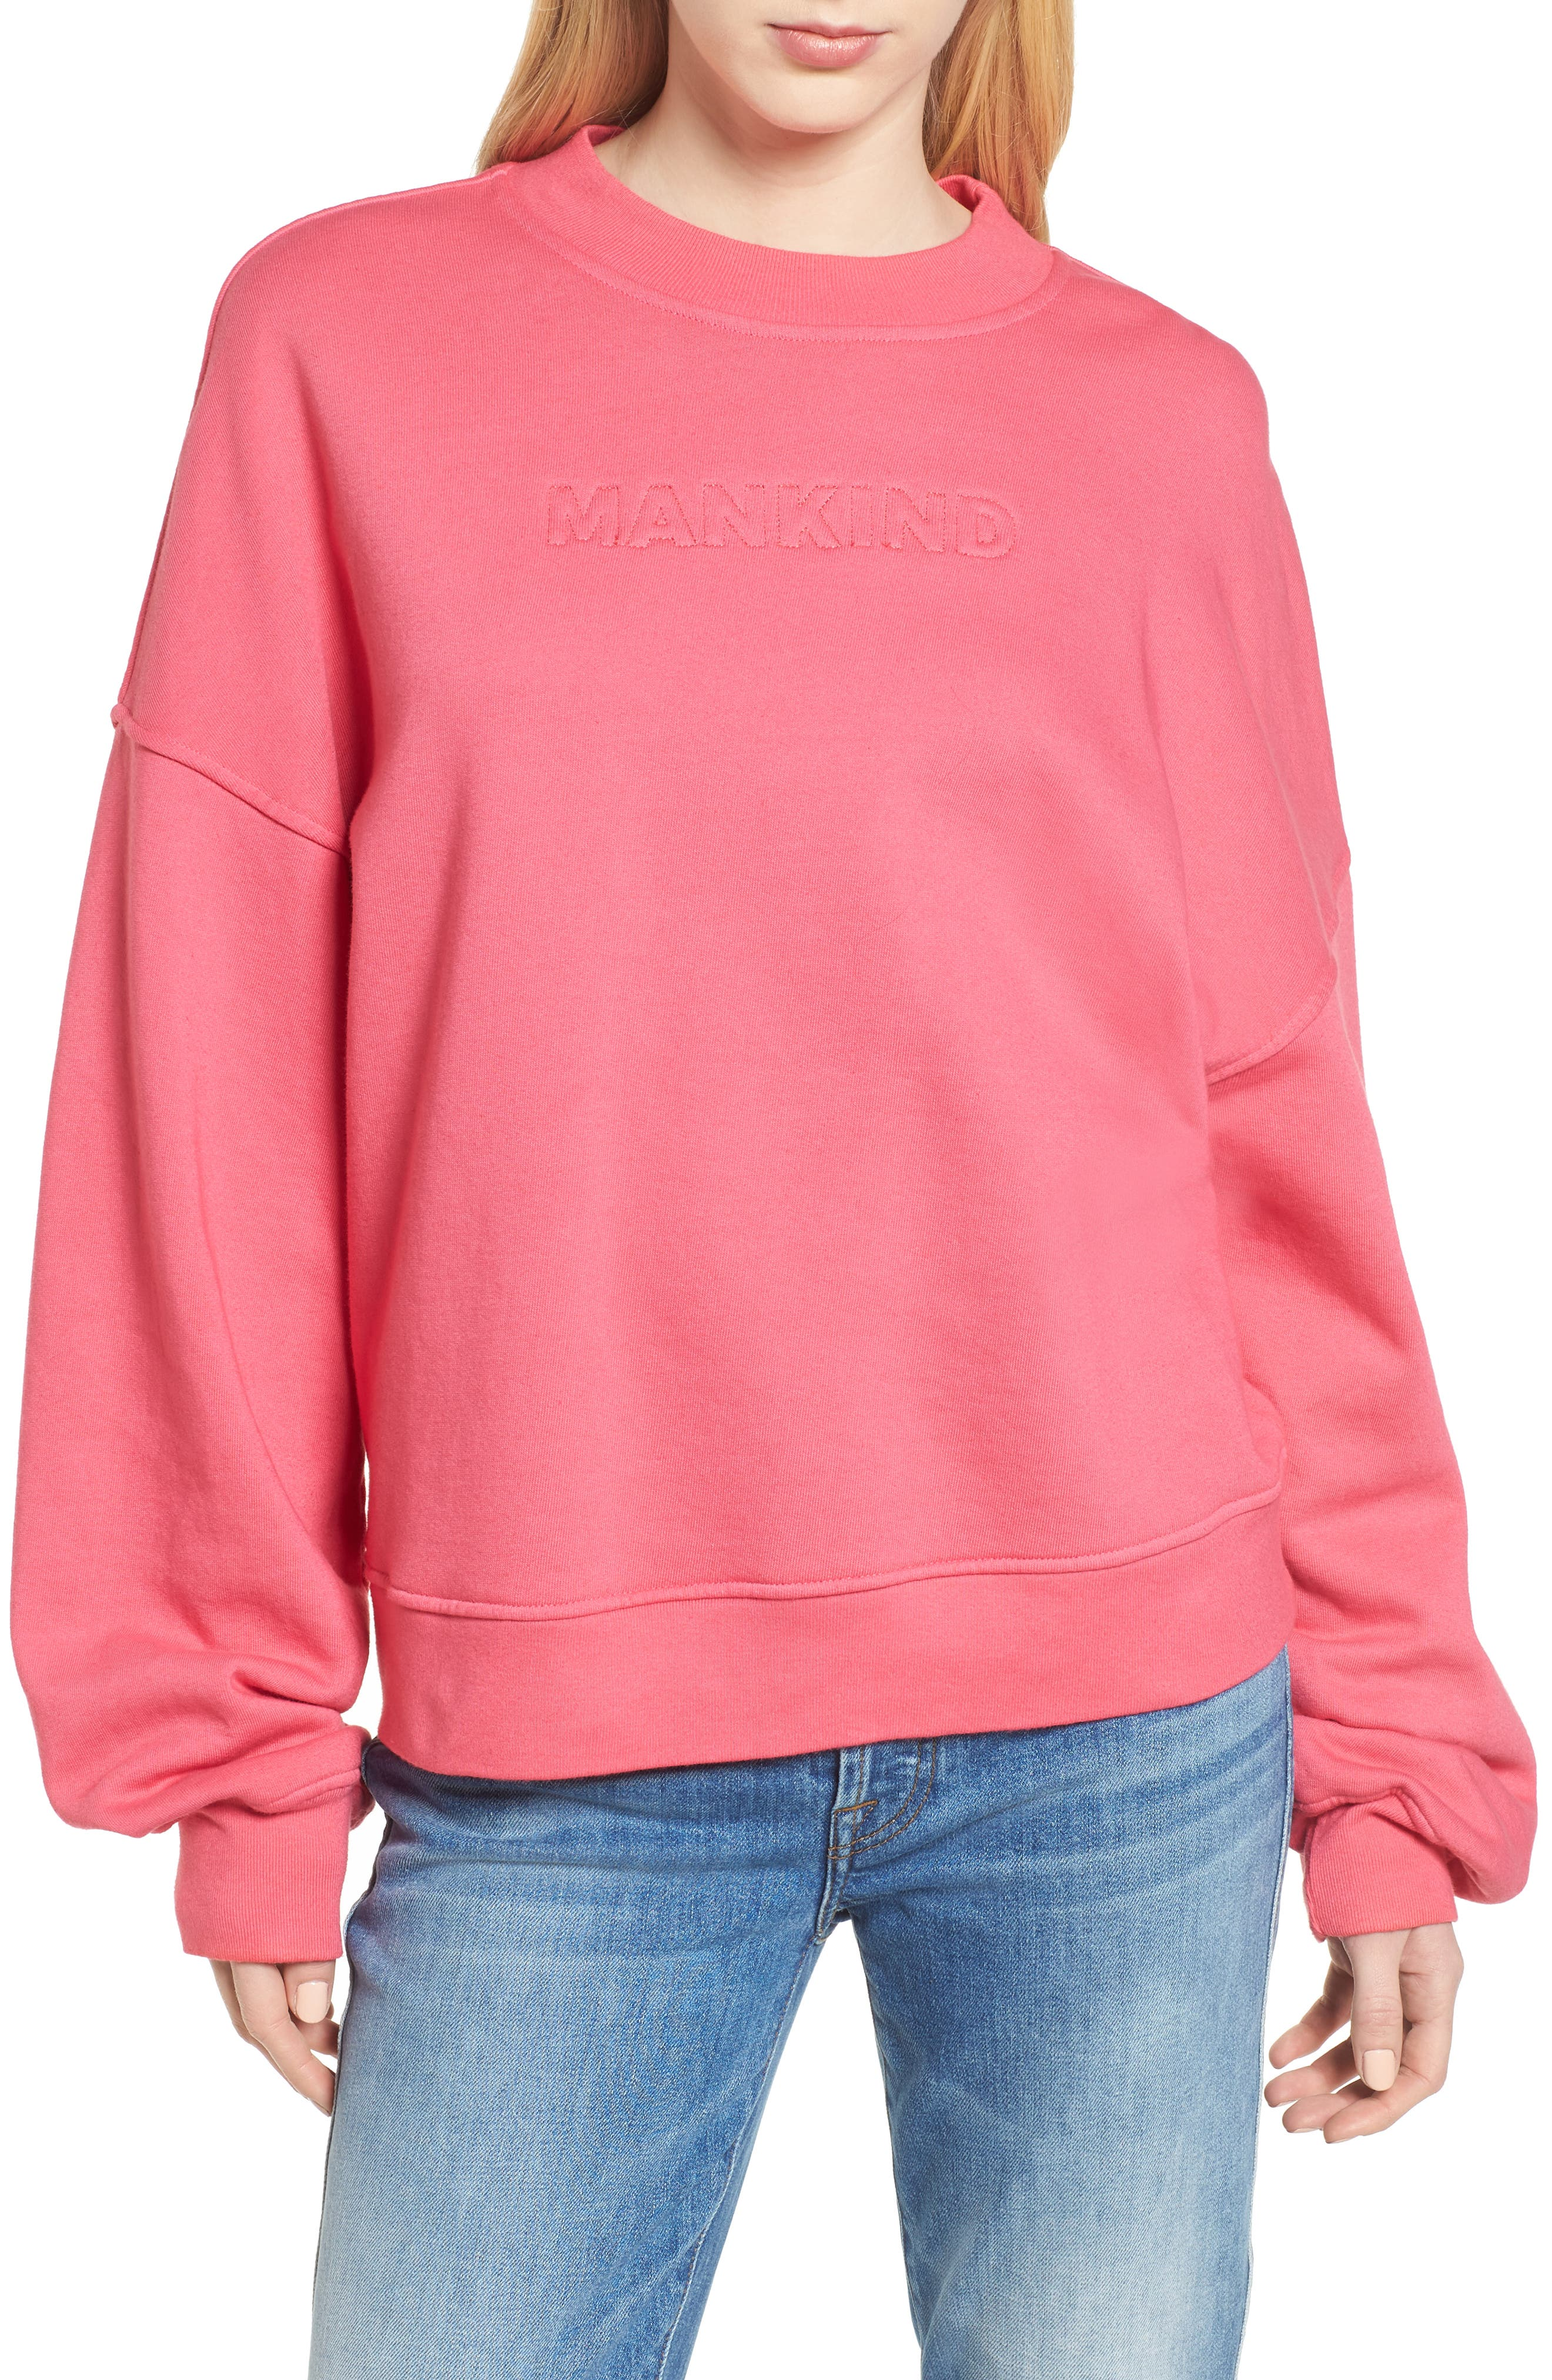 Mankind Outline Embroidered Sweatshirt,                             Main thumbnail 1, color,